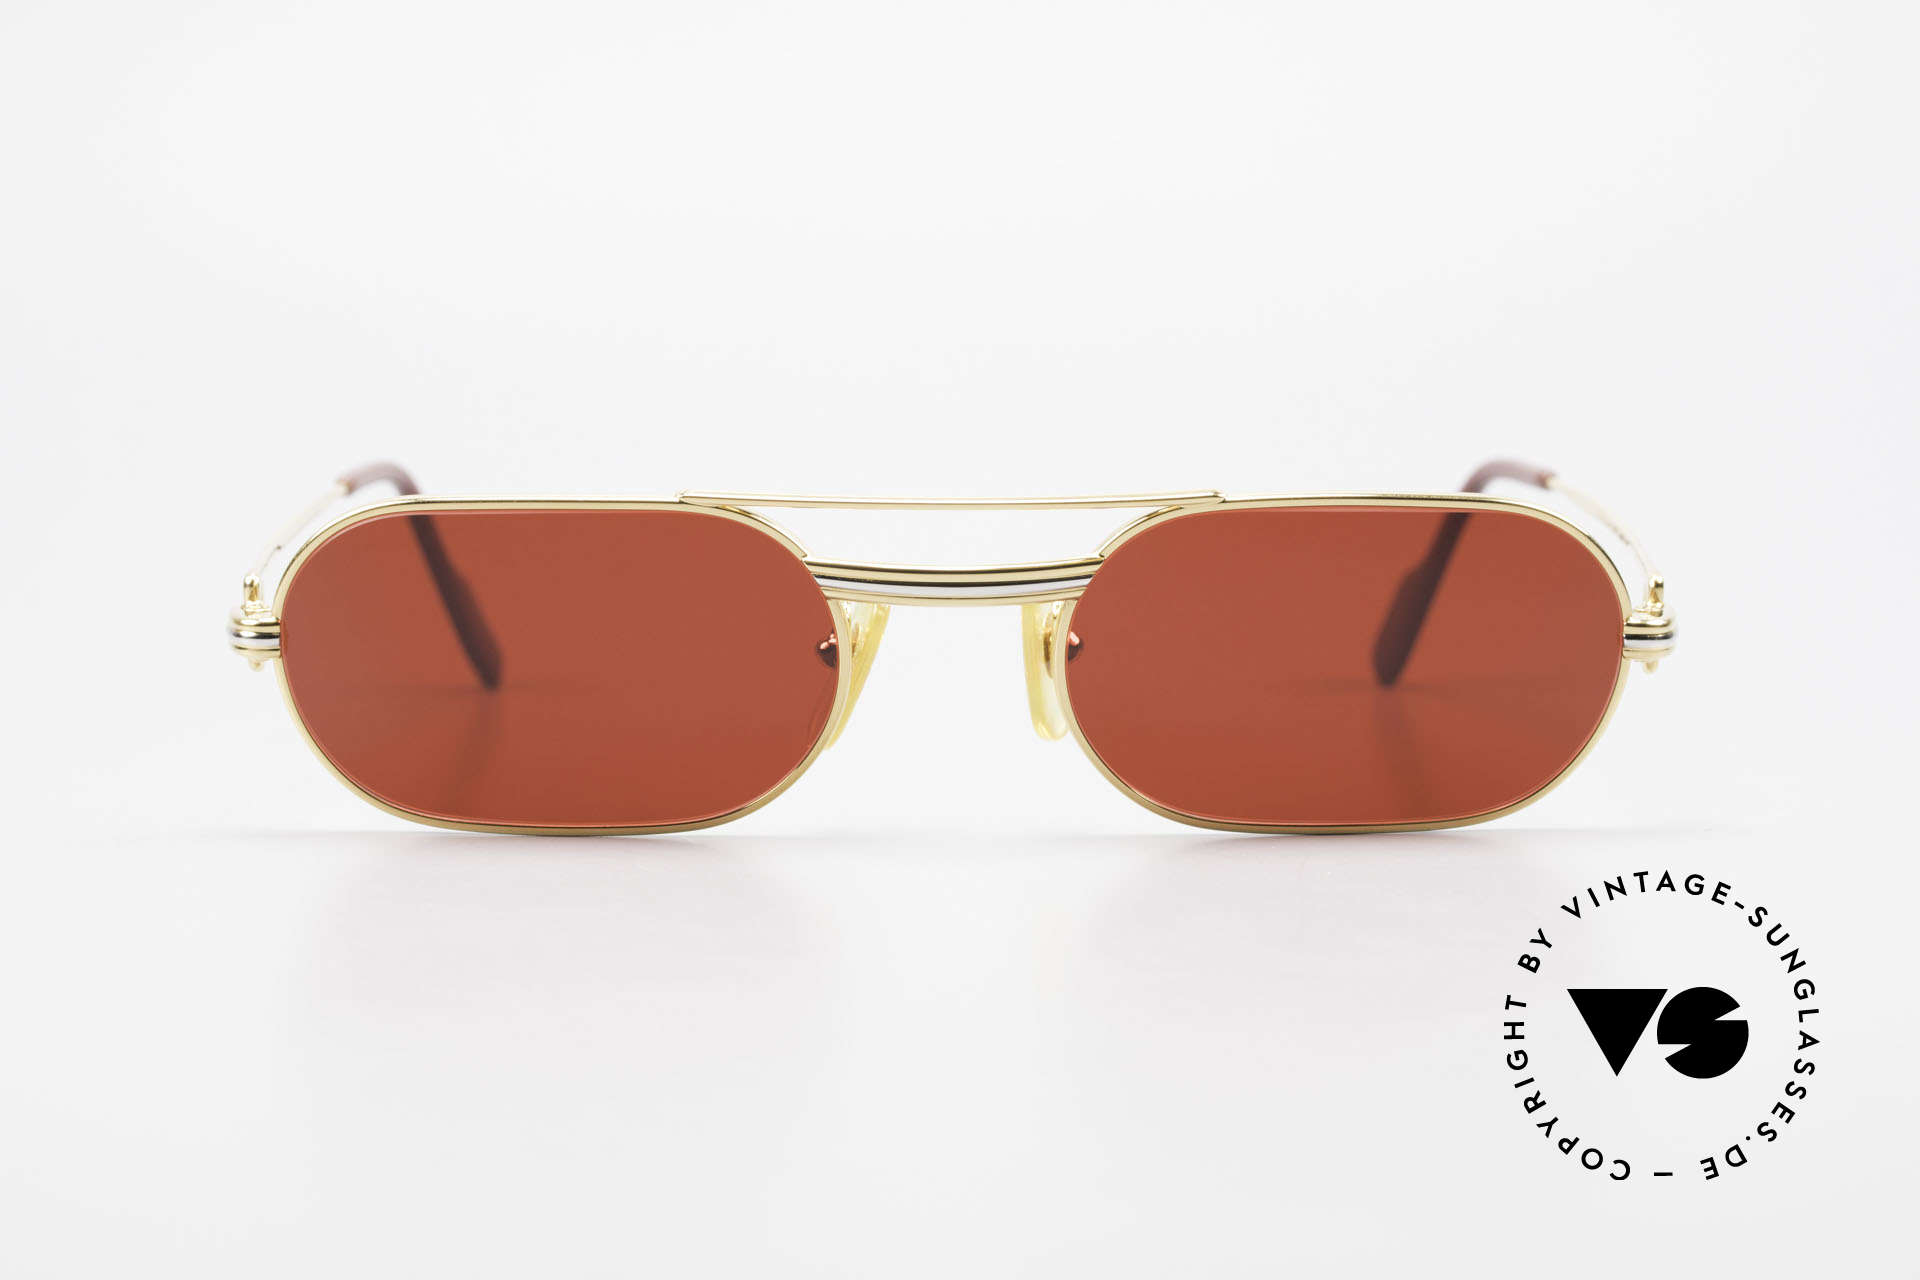 Cartier MUST LC - S 3D Red Luxury Sunglasses, this pair with Louis Cartier decor, S size 53/20, 130, Made for Men and Women